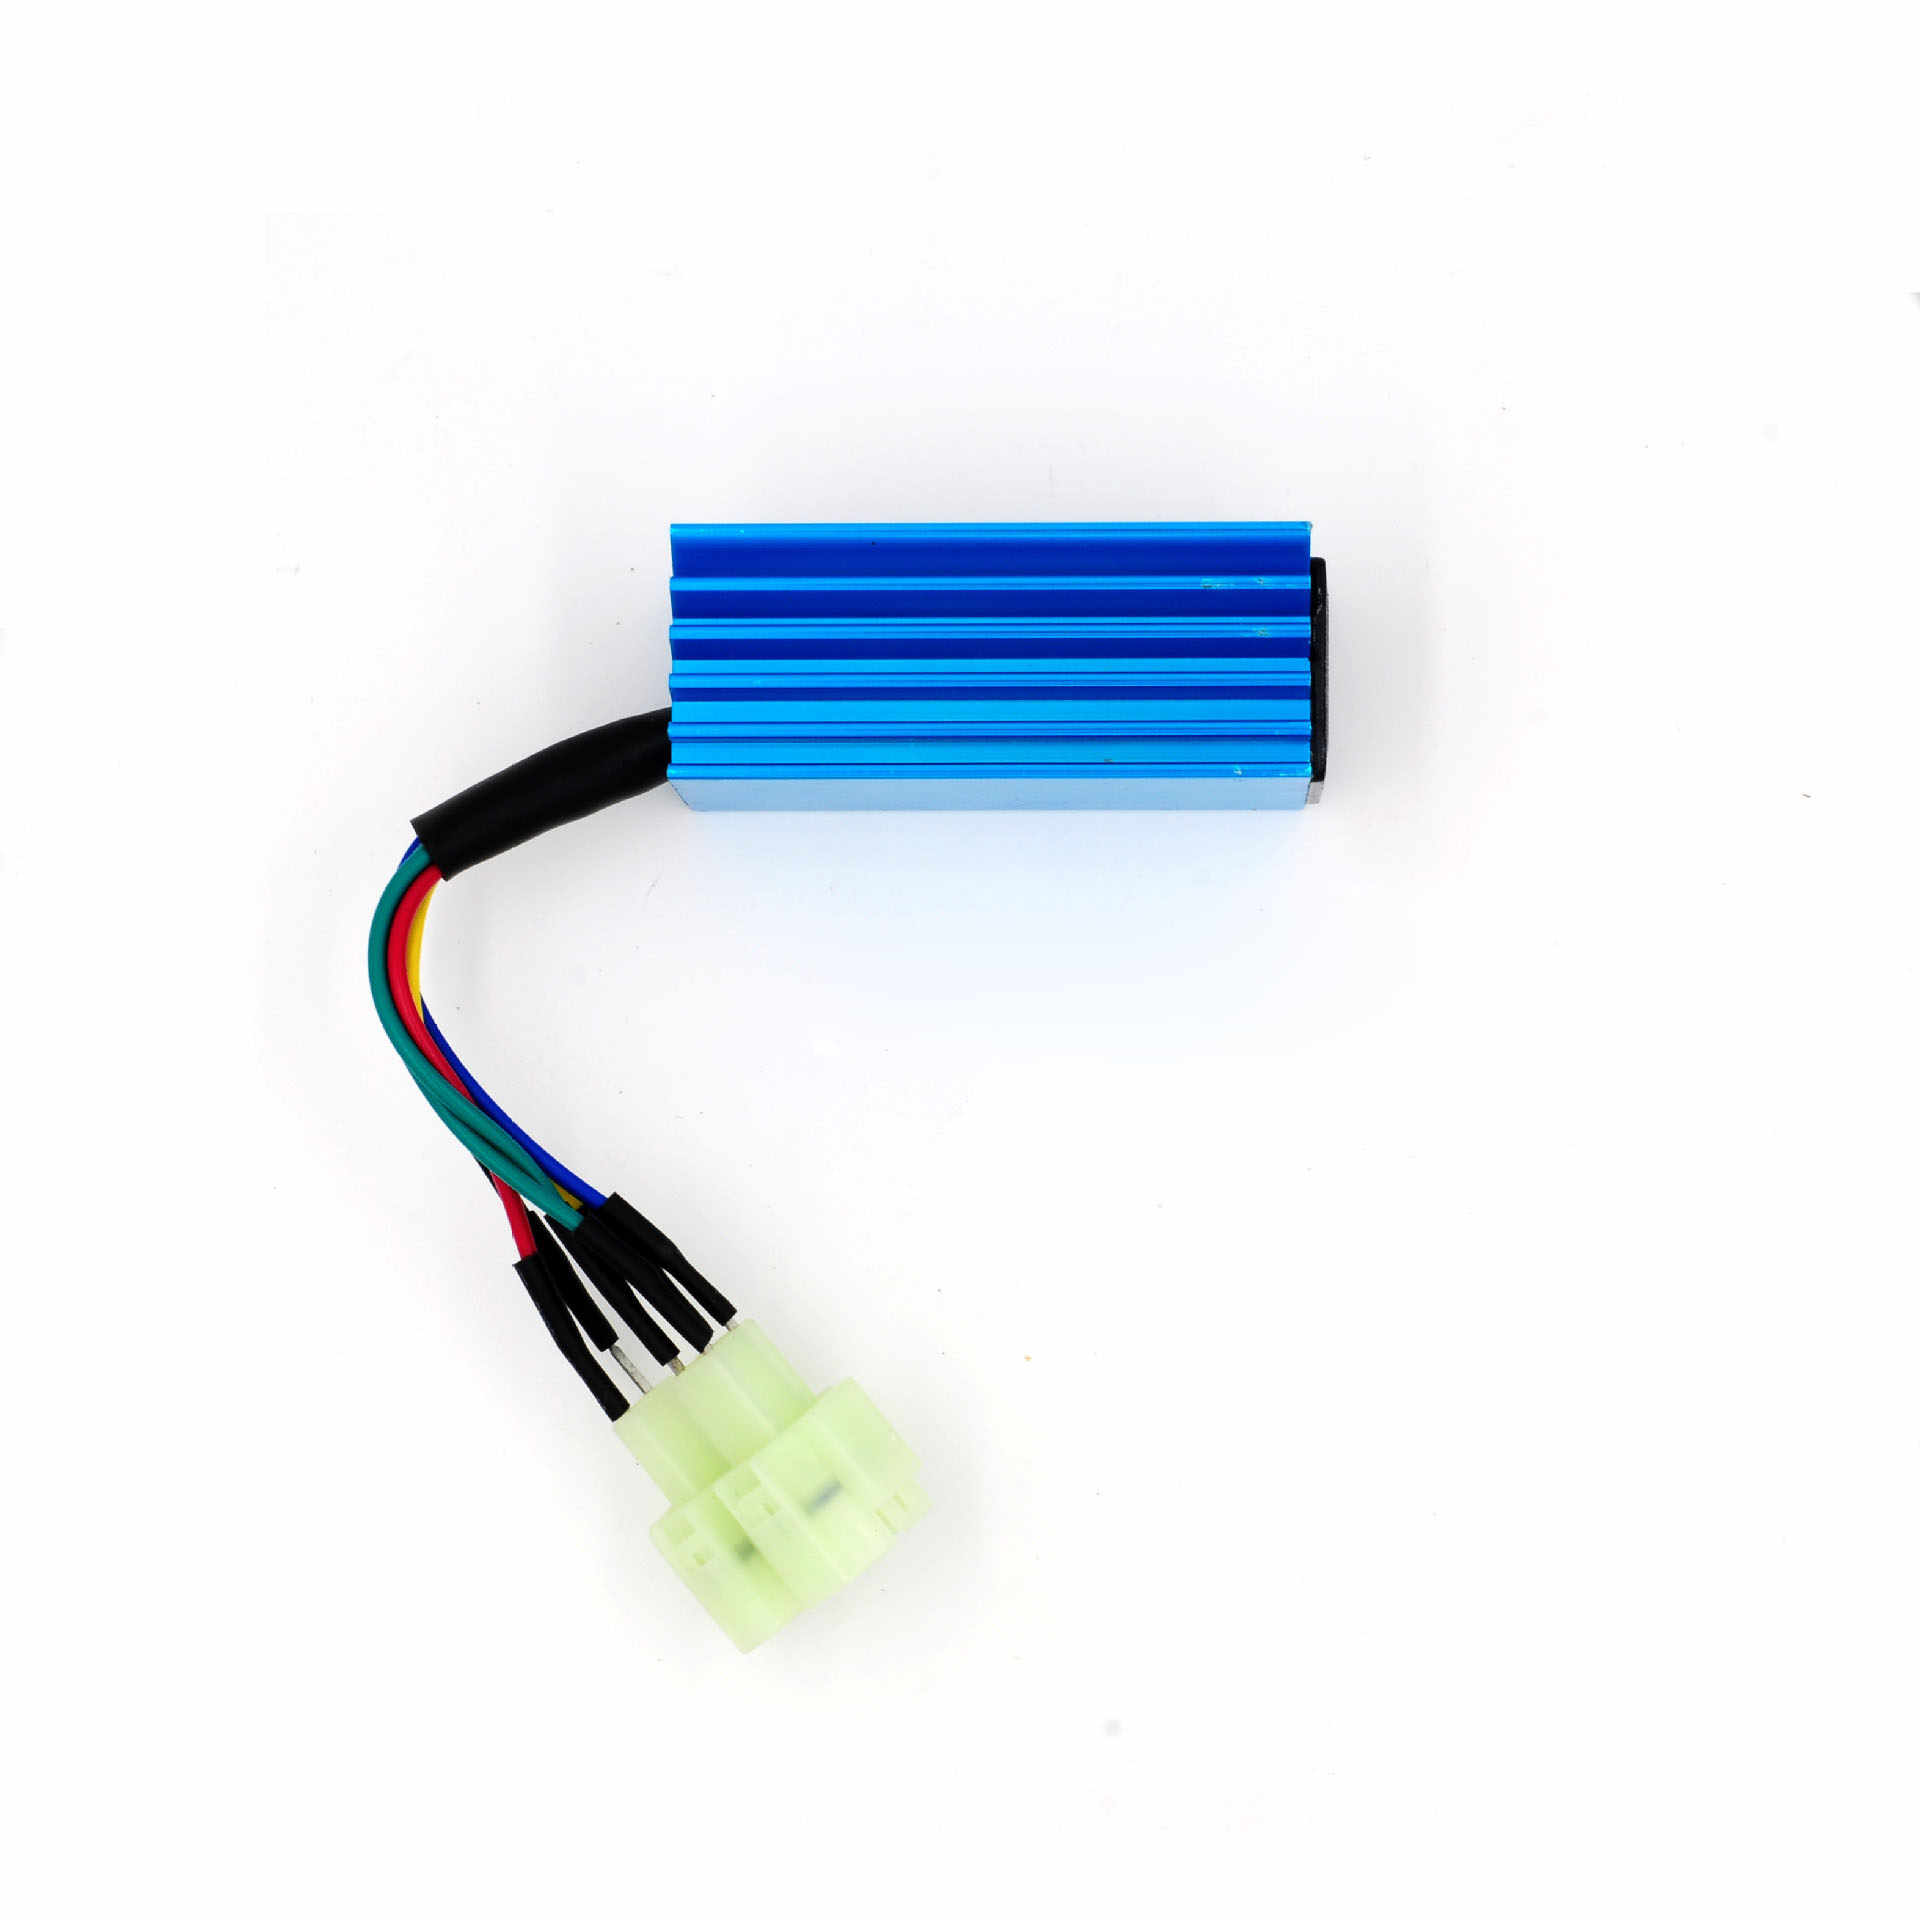 1pc performance 6 pin racing cdi box ignition coil for gy6 scooter moped 50cc 150cc [ 1920 x 1920 Pixel ]